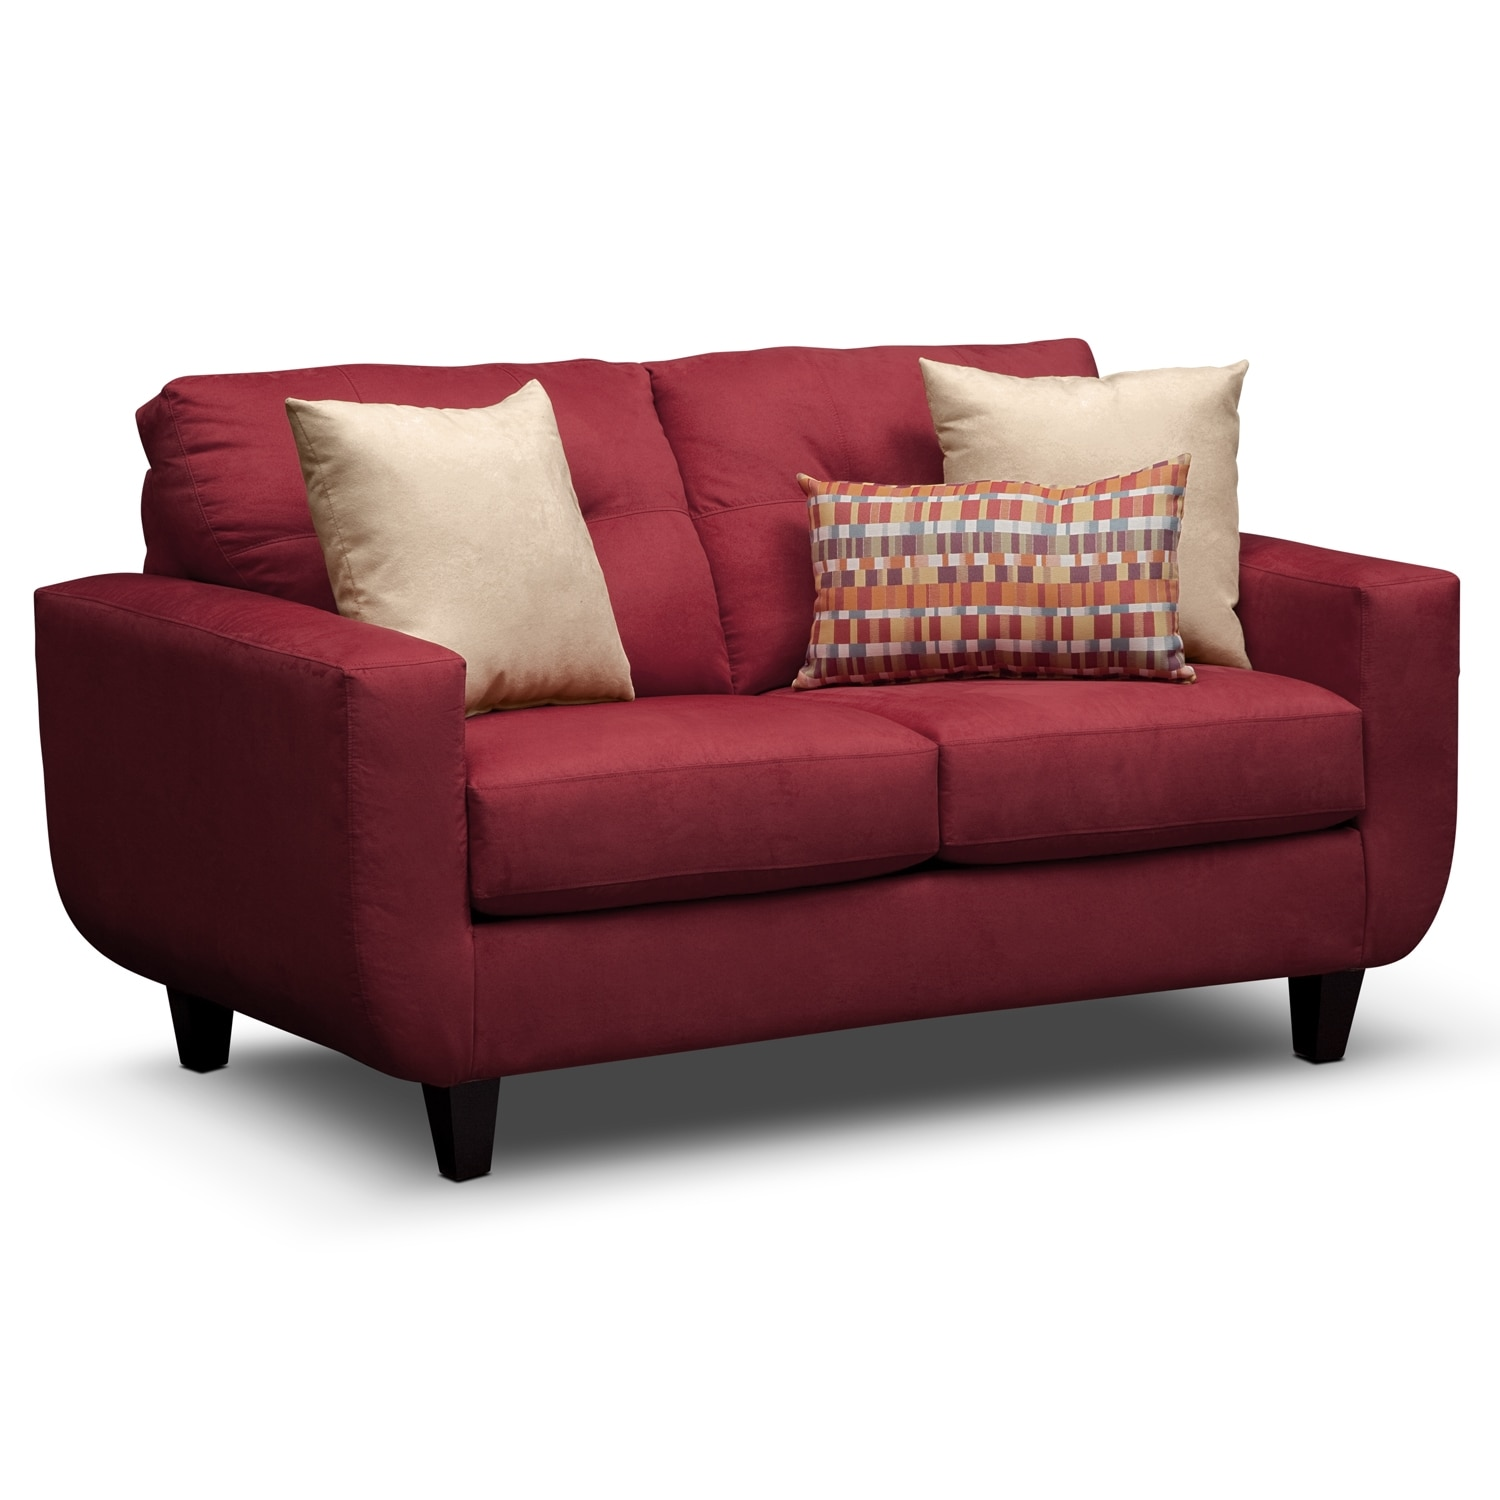 Living Room Furniture - West Village Loveseat - Red